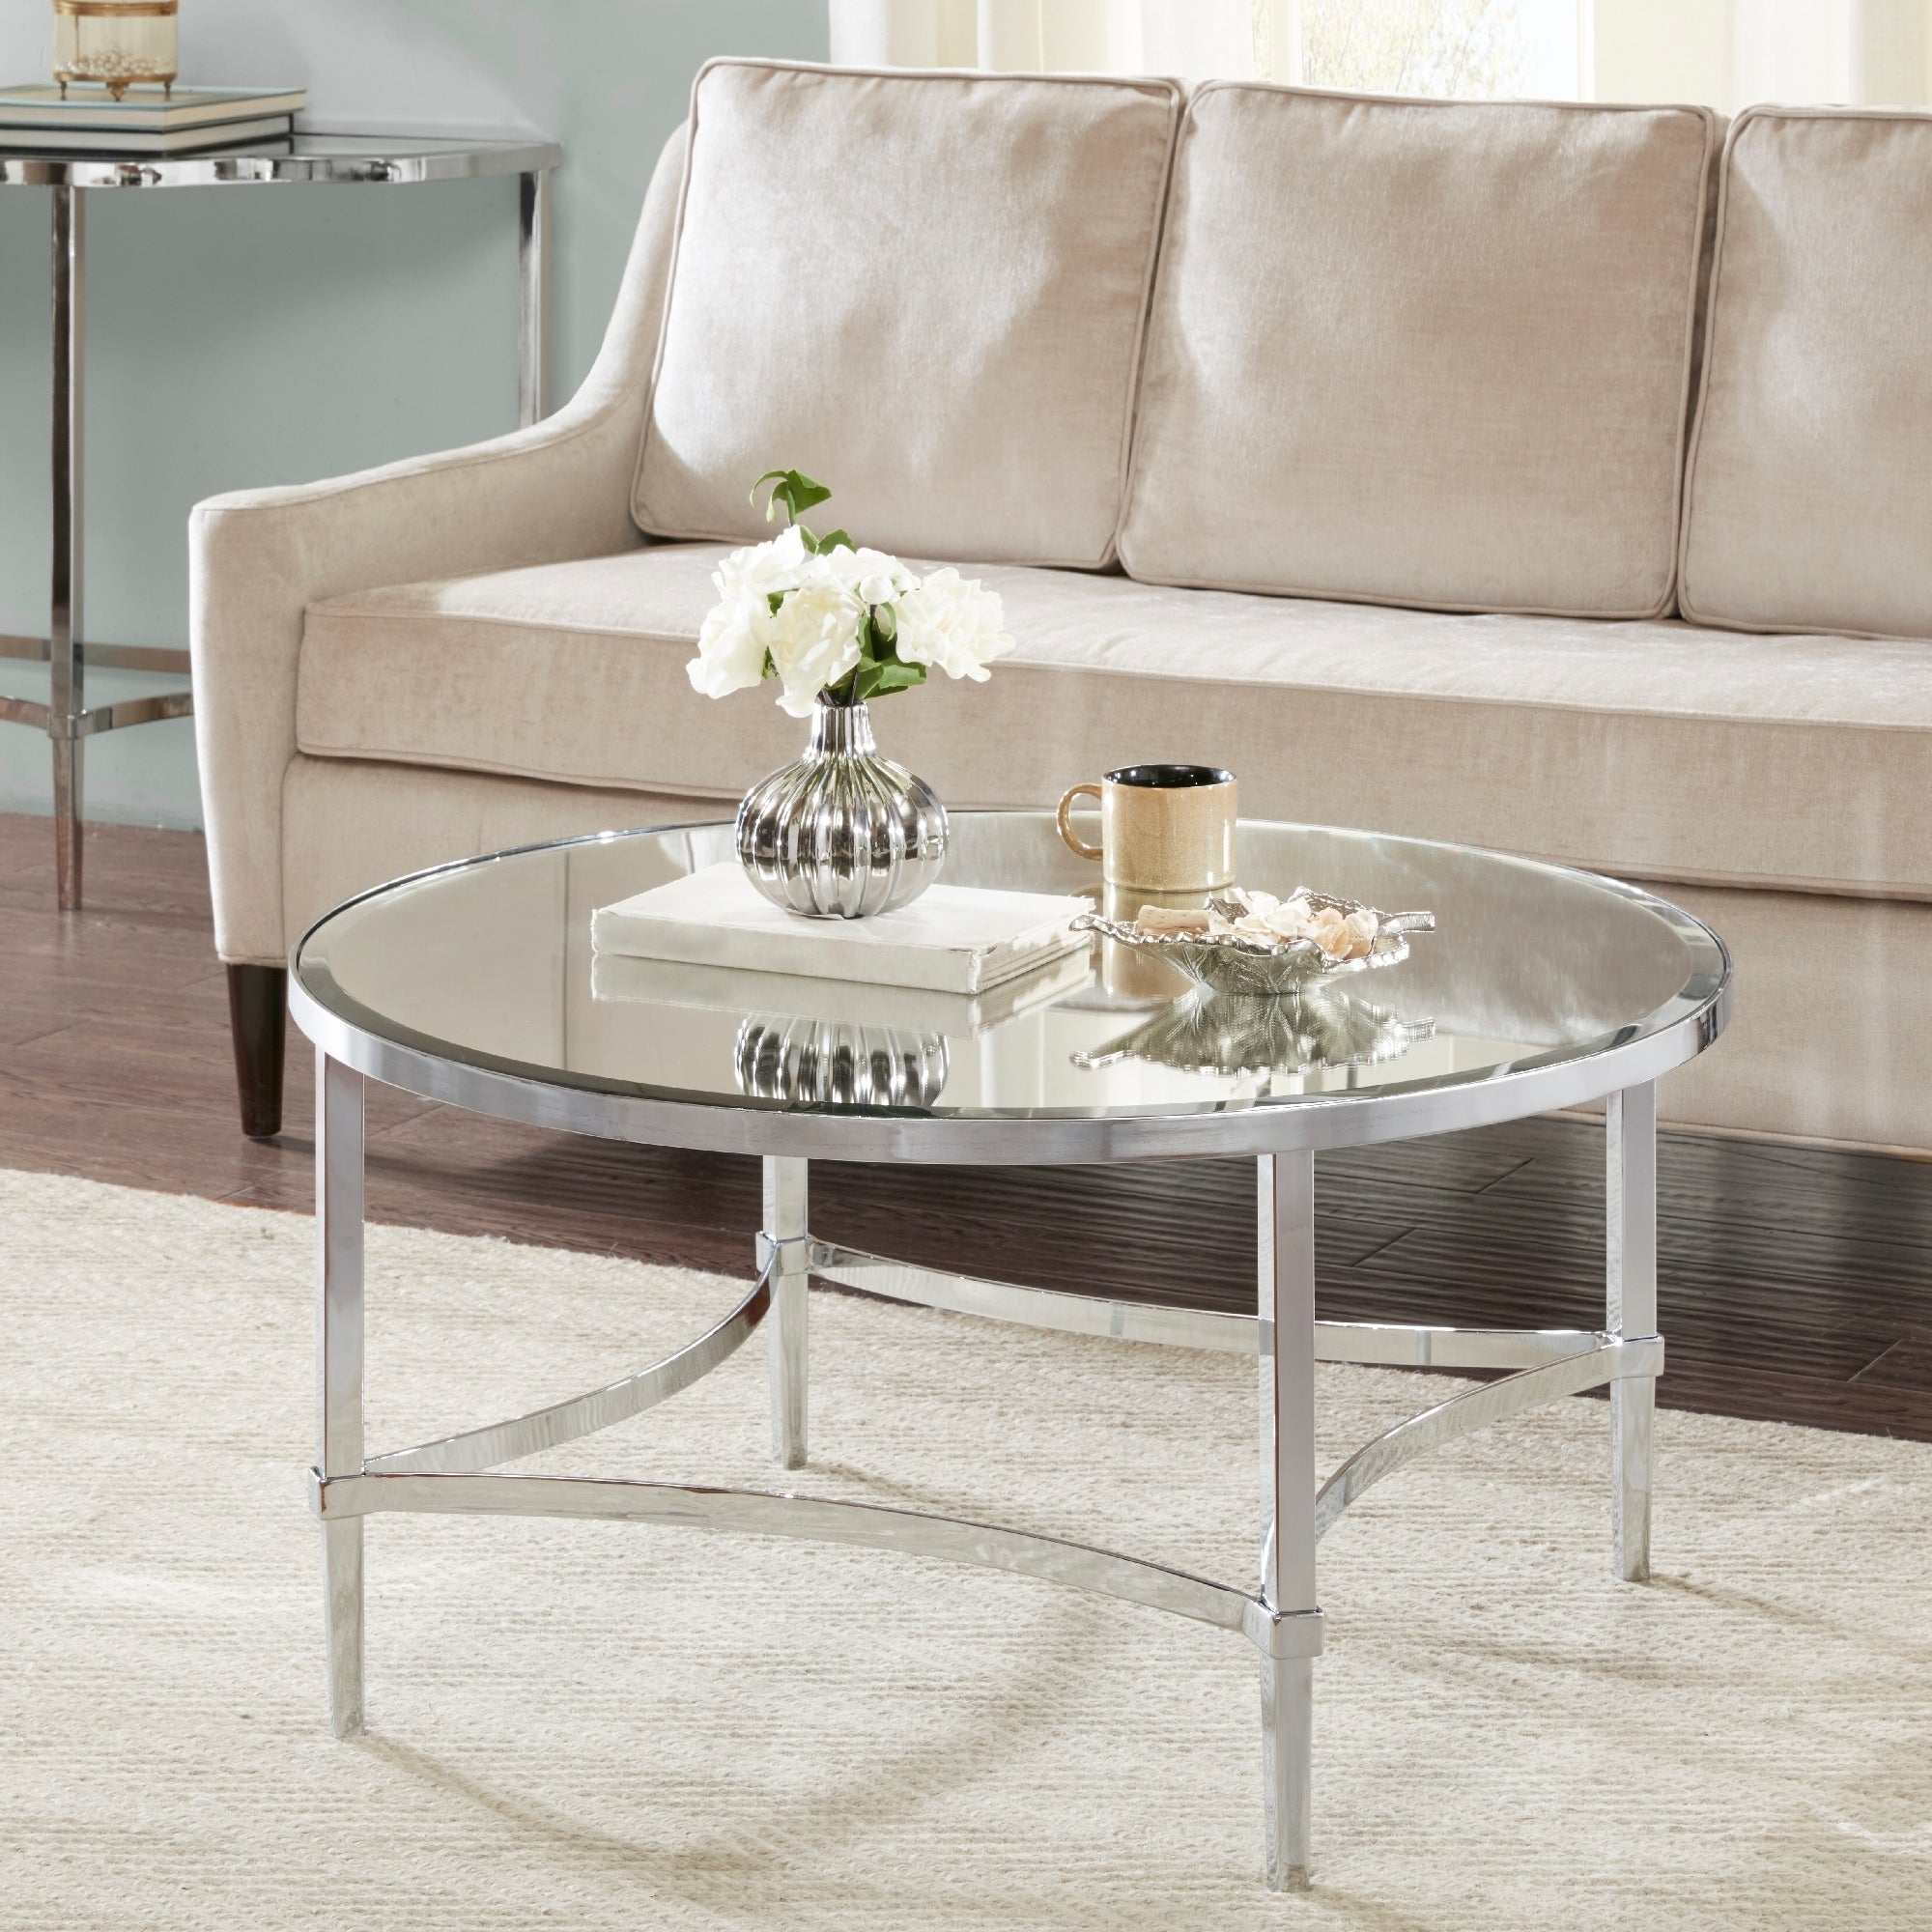 Madison Park Signature Triton Silver Round Coffee Table On Free Shipping Today 22436257